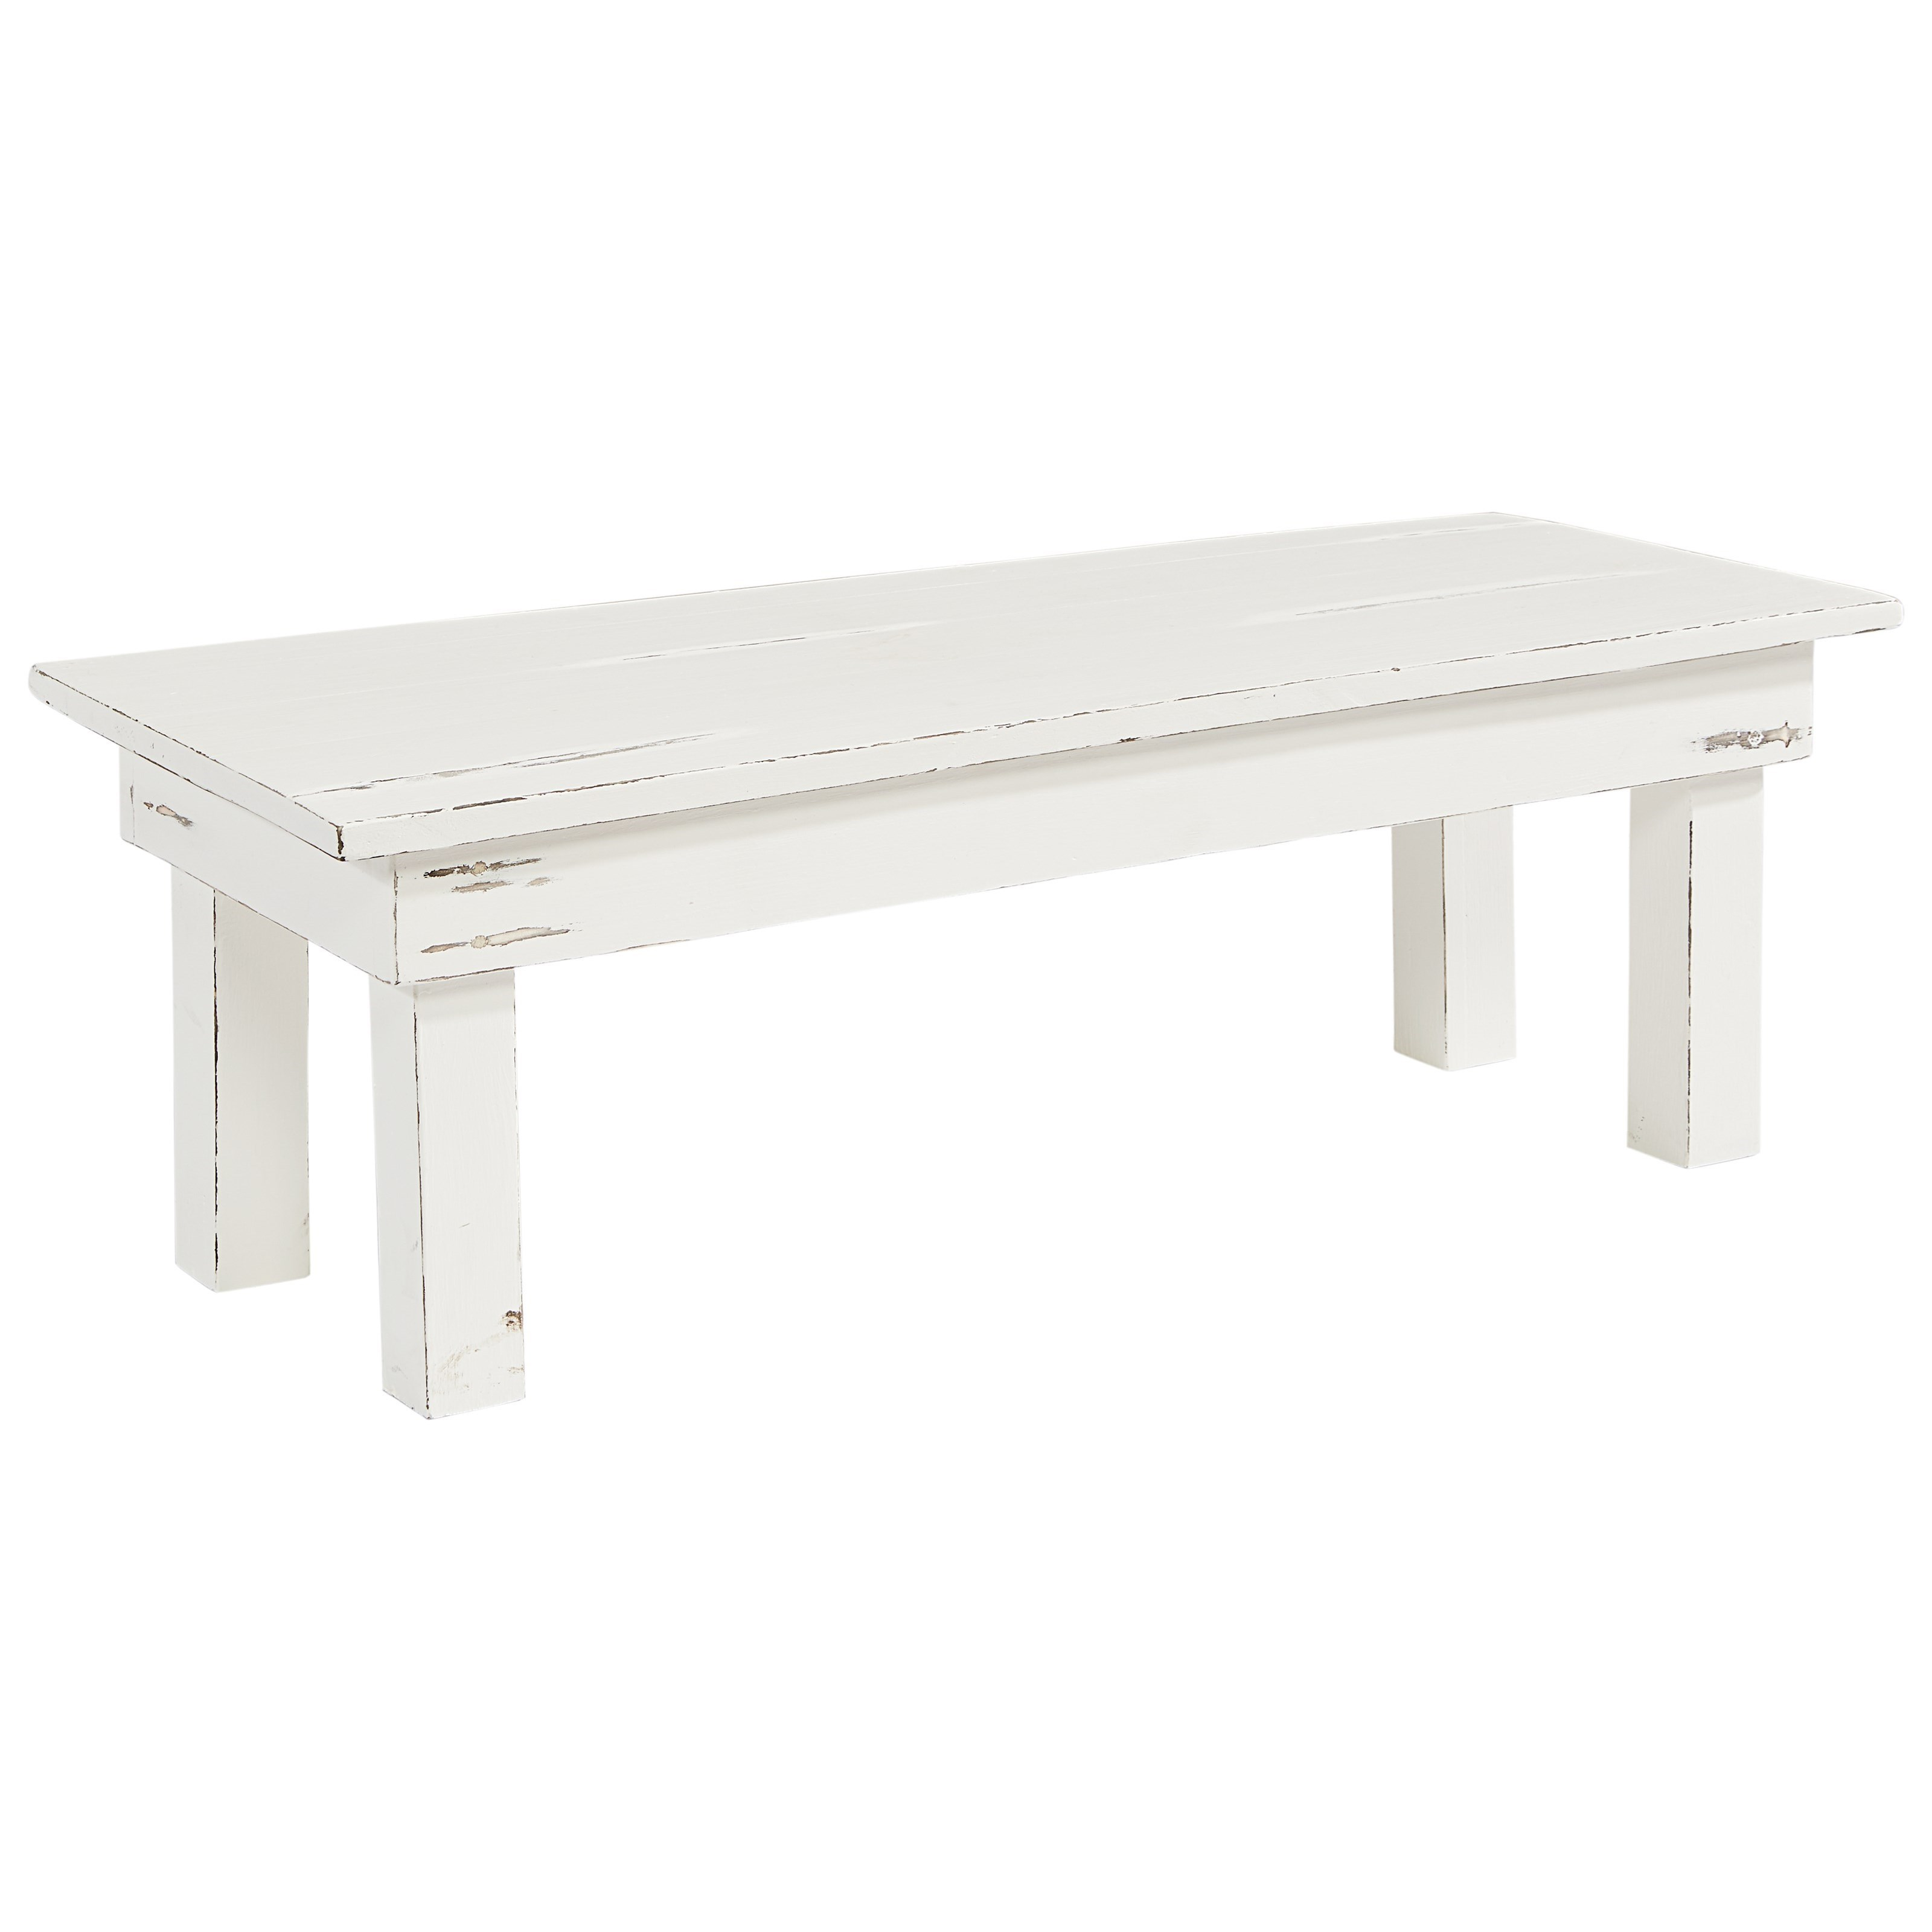 Magnolia Home by Joanna Gaines Farmhouse Kid s Bench with